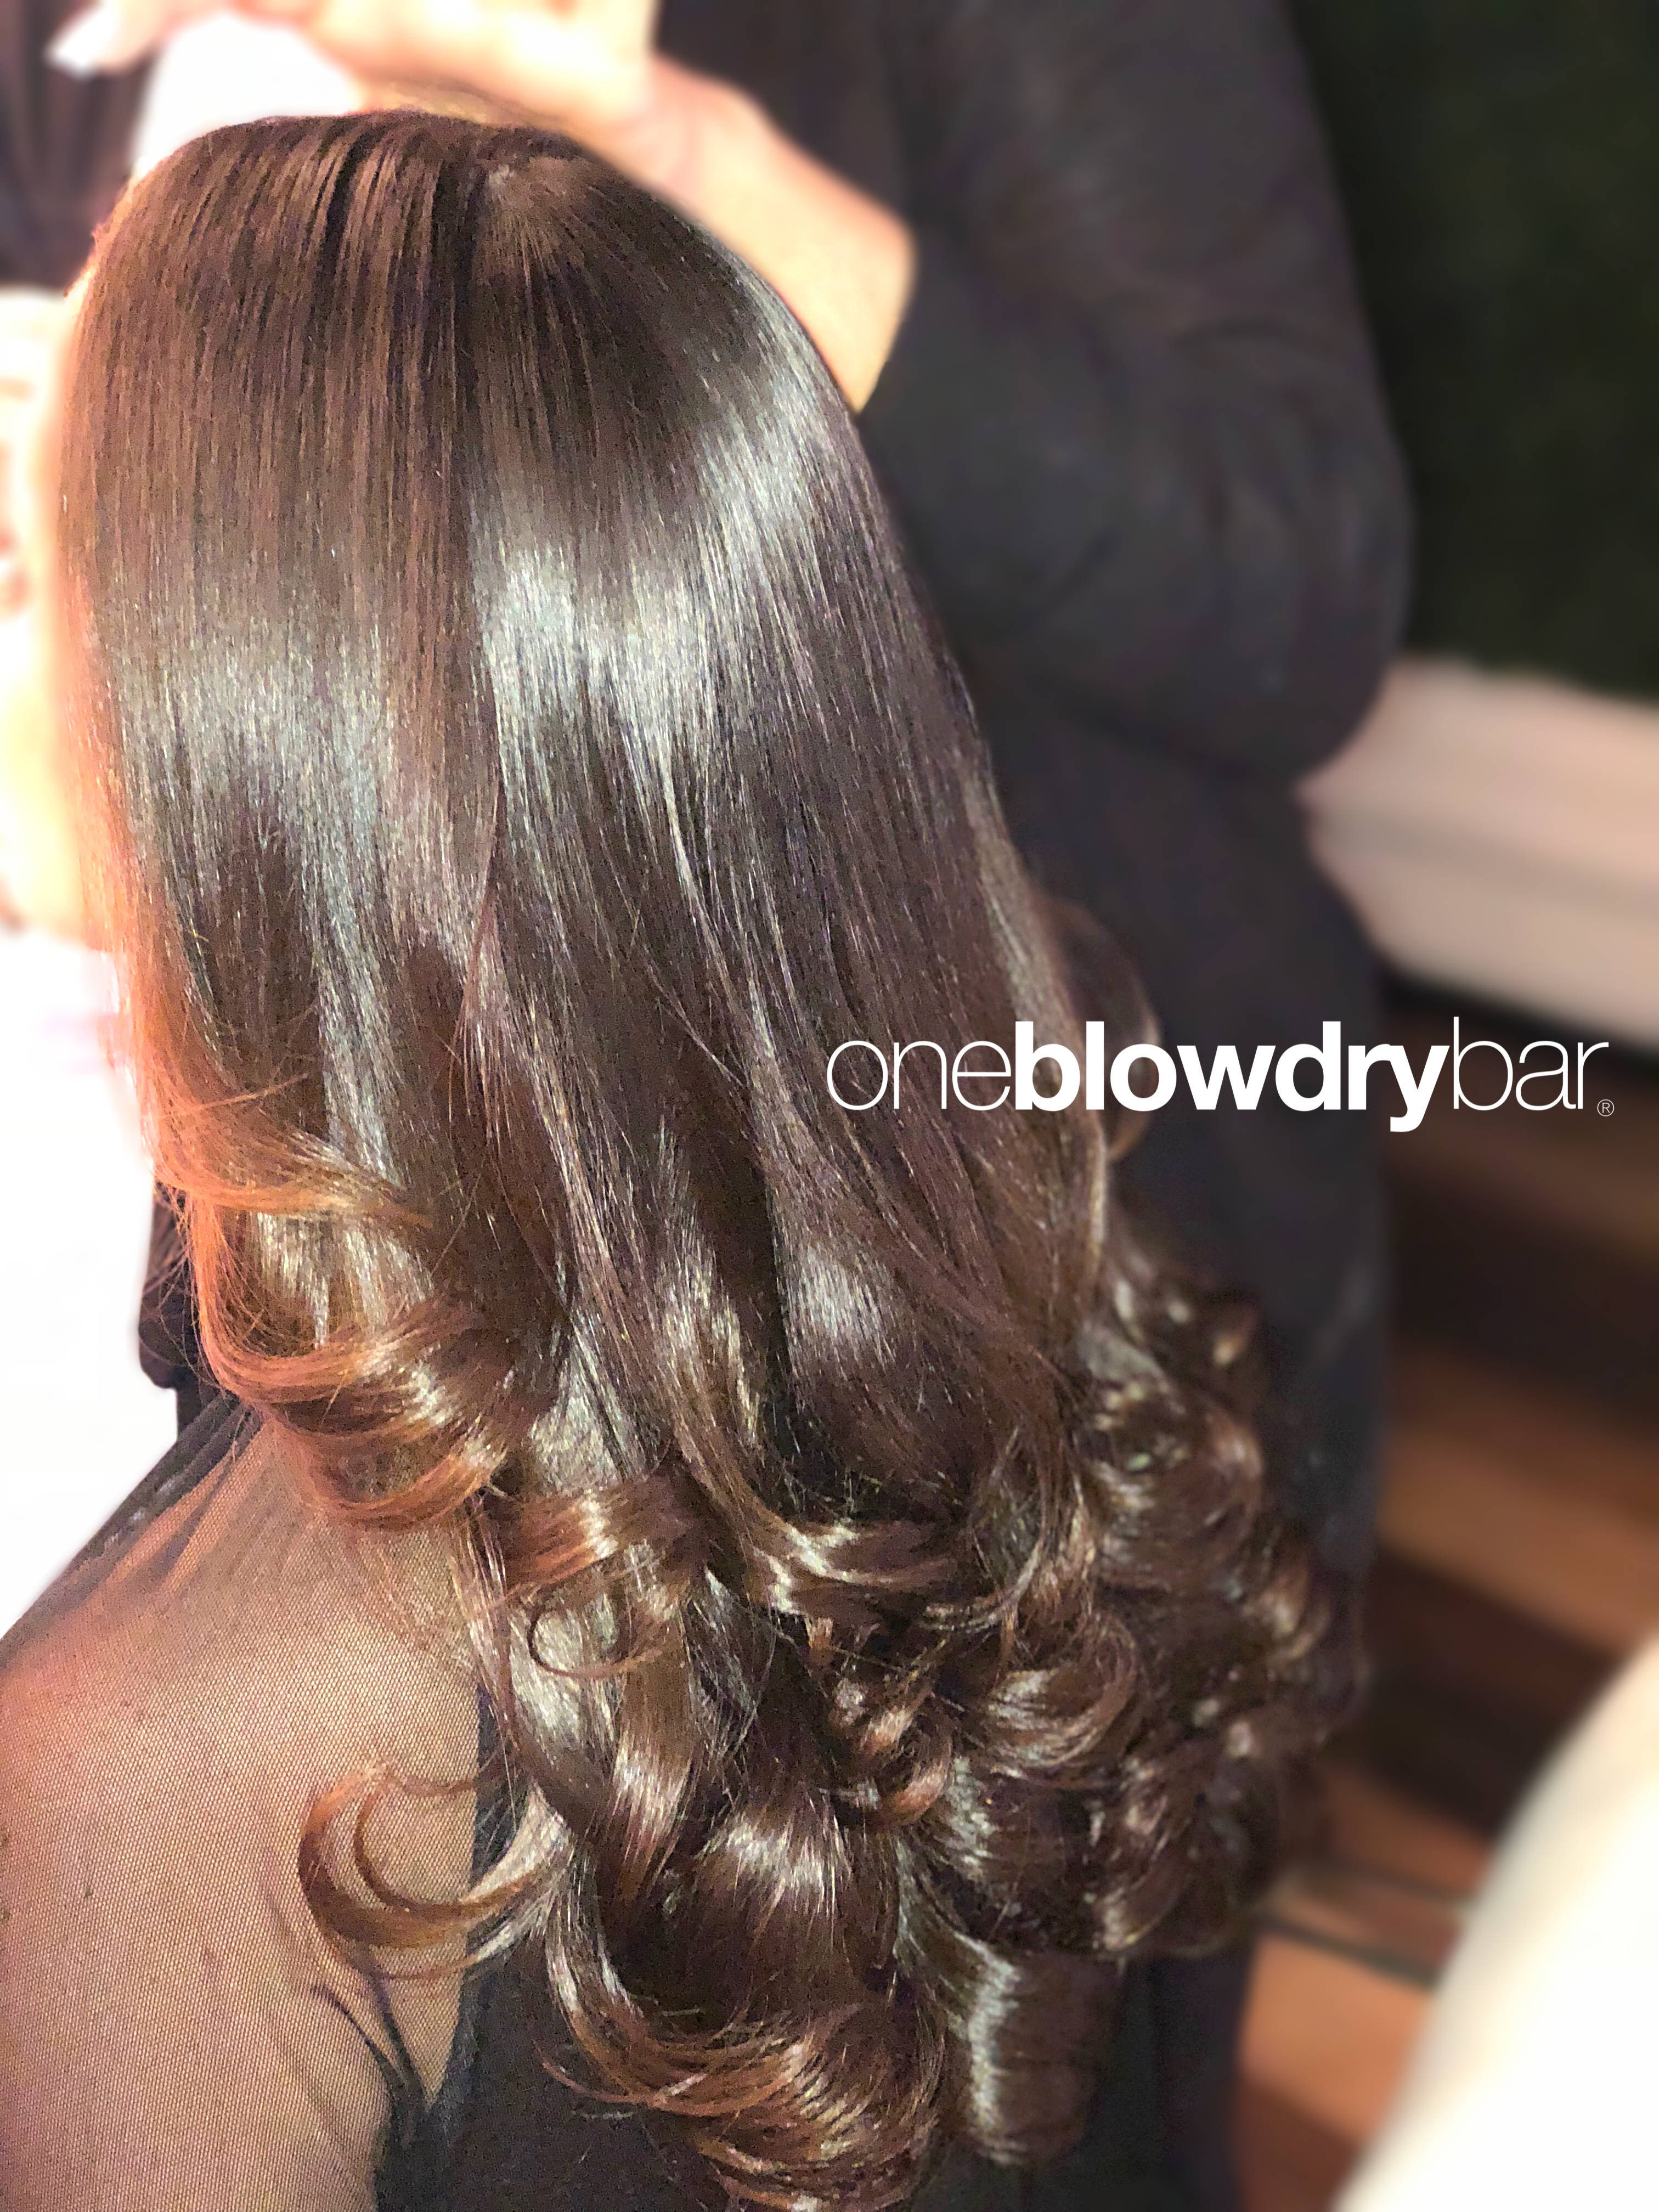 Customer Blow Dry Blow Out Hair Styling From The Popular Blow Dry Brand Oneblowdrybar Red Bank Blow Dry Hair Curls Blowout Hair Blow Dry Hair